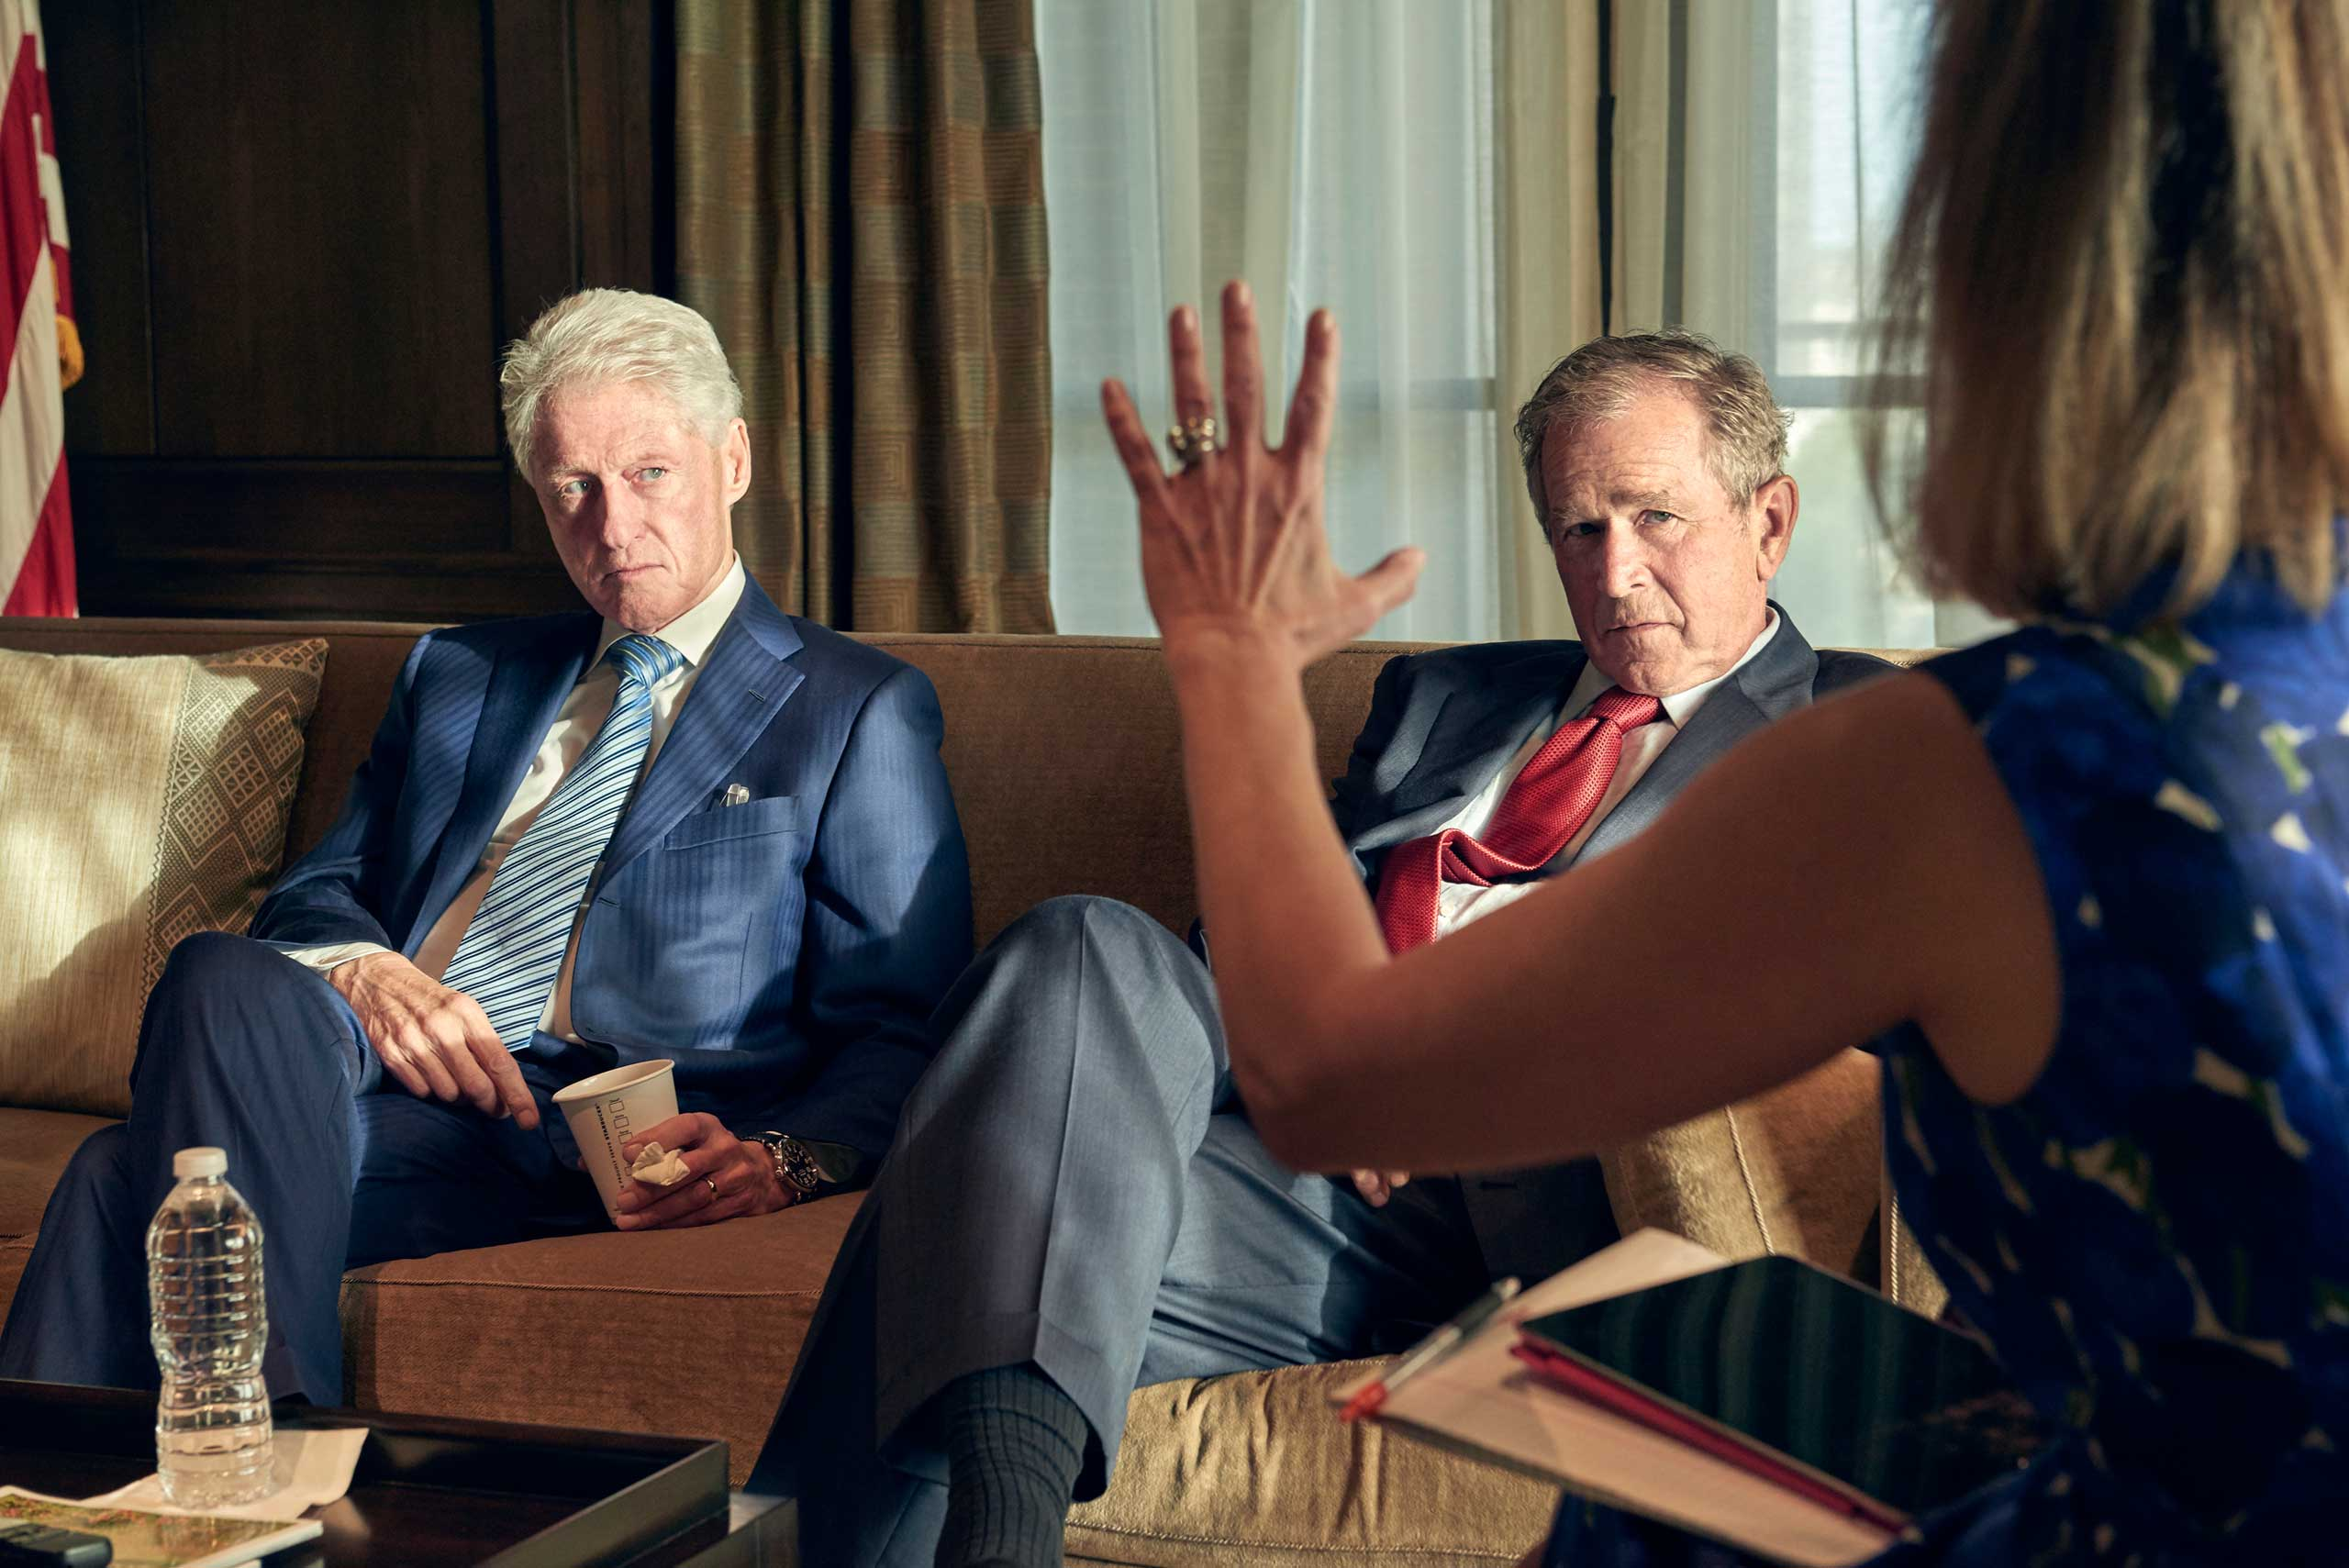 Former presidents Bill Clinton and George W. Bush in discussion with  TIME's editor Nancy Gibbs